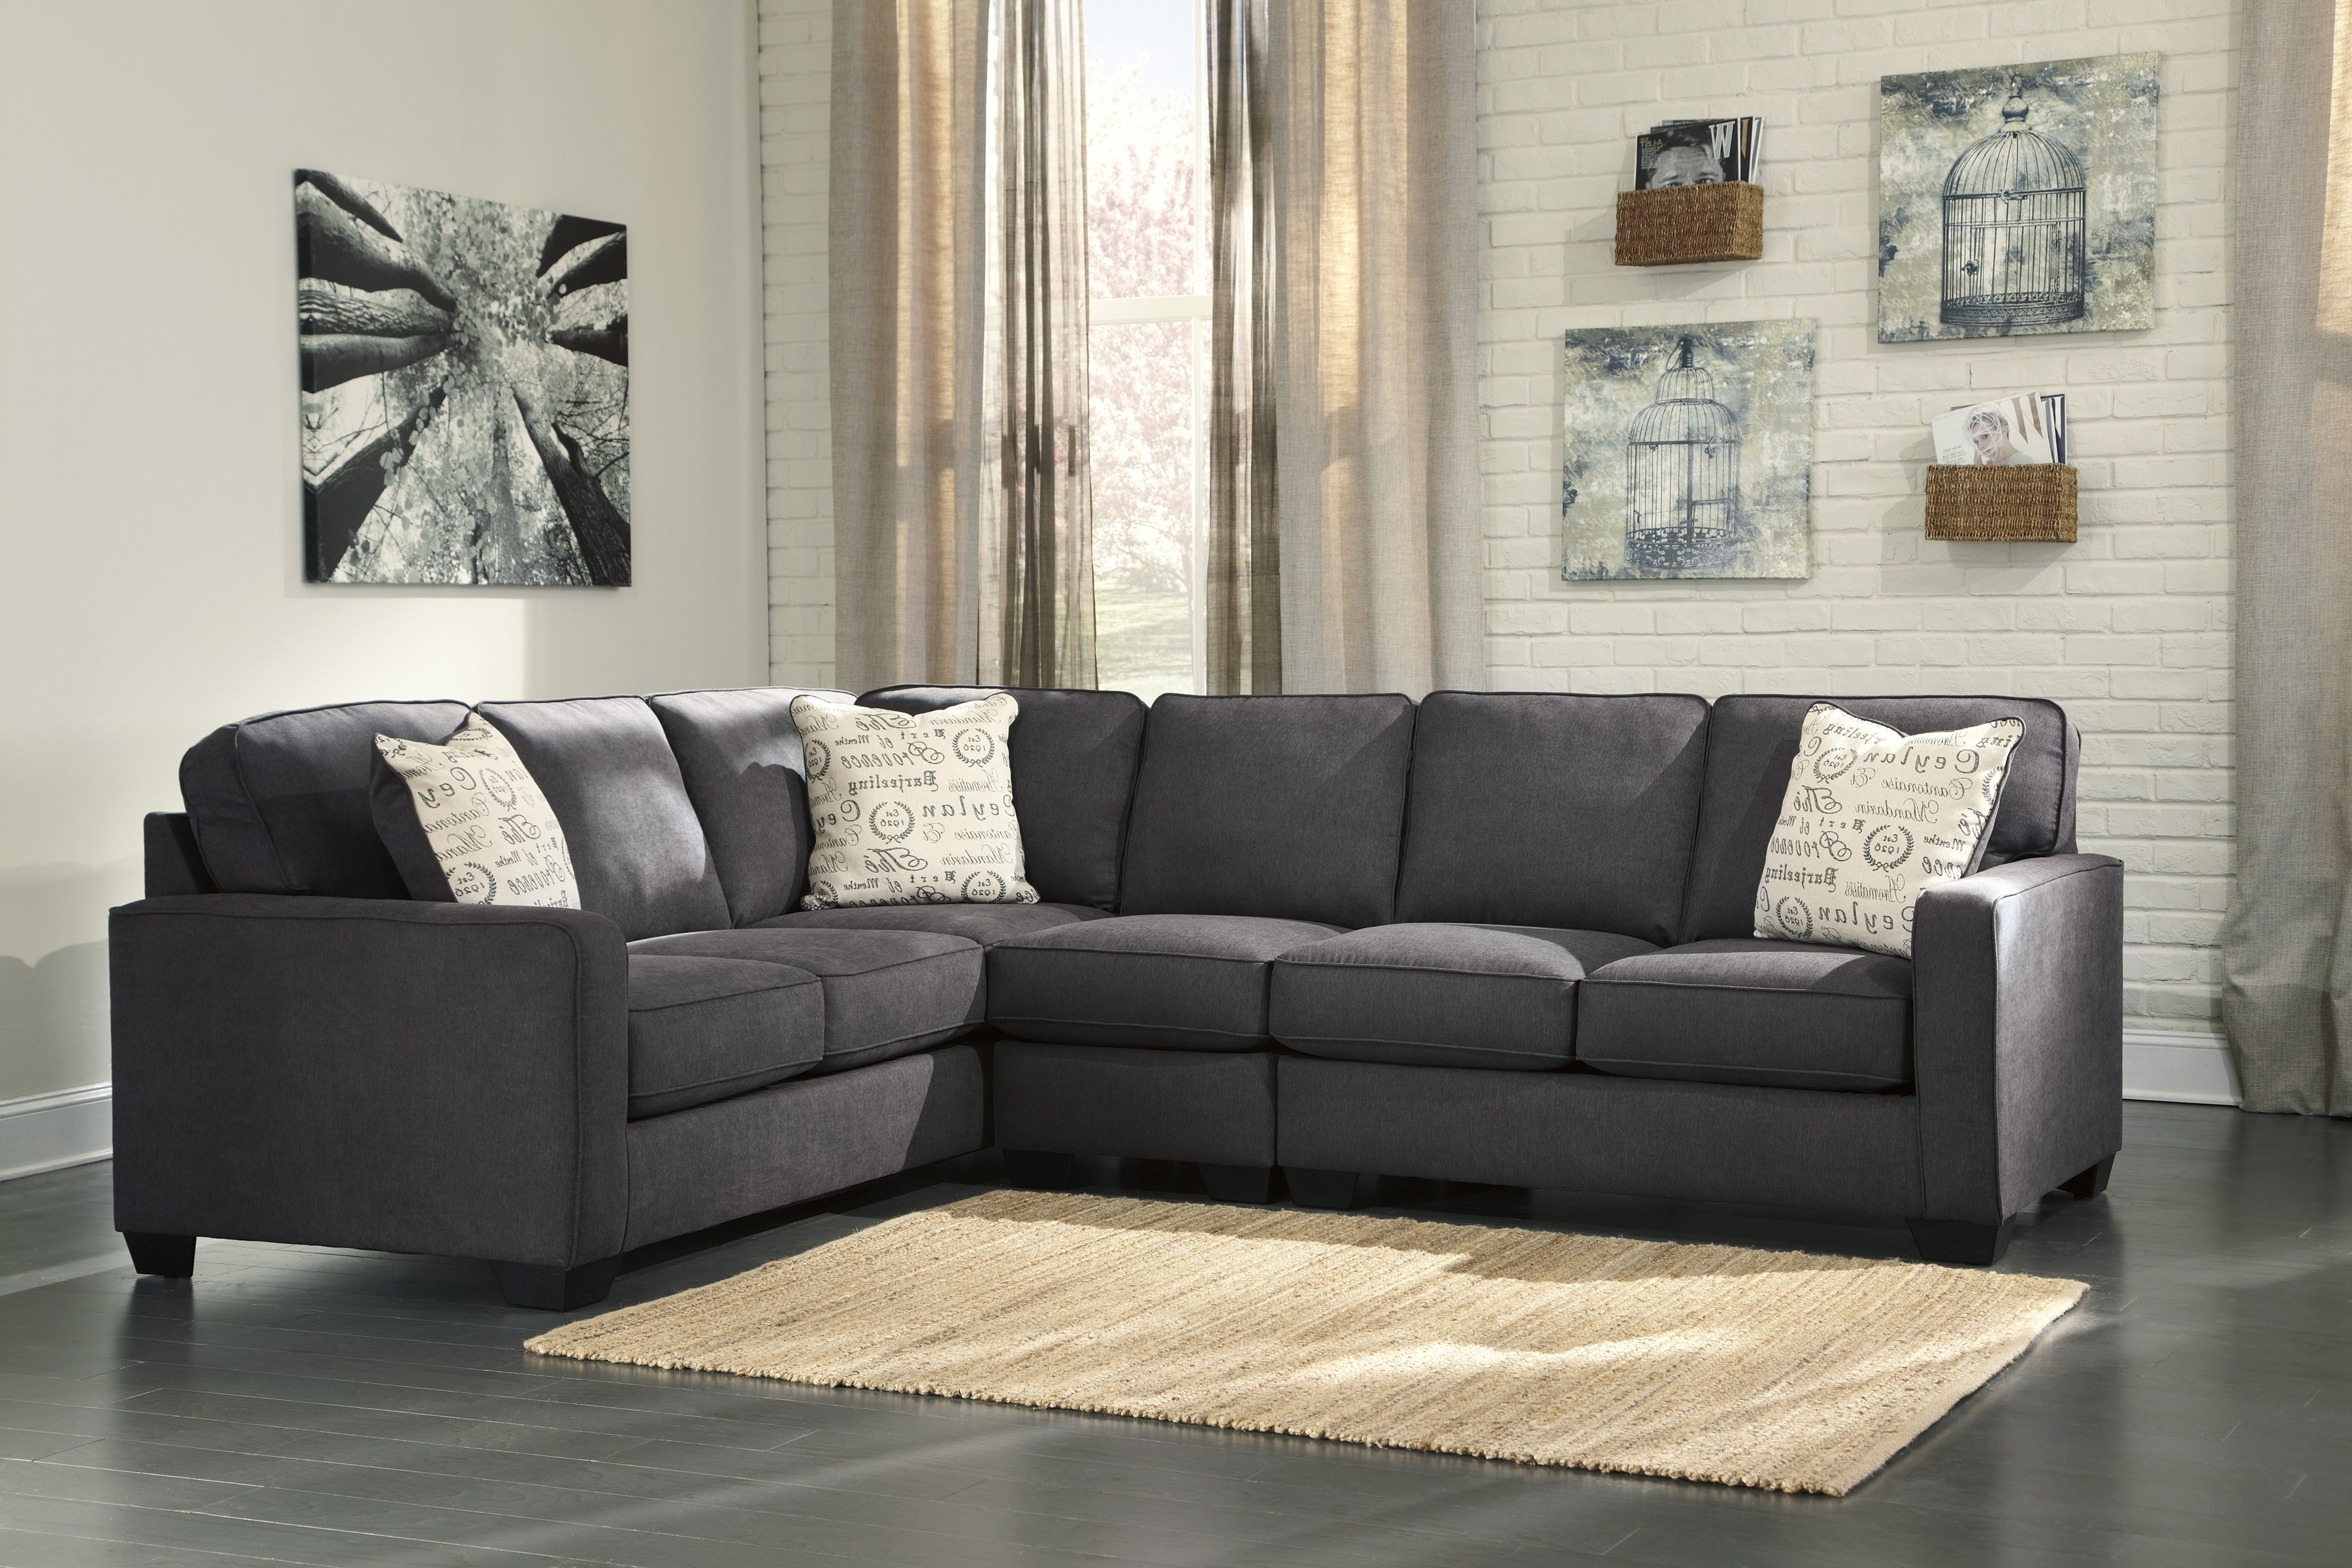 Alenya Charcoal 3 Piece Sectional Sofa For $ (Image 2 of 25)